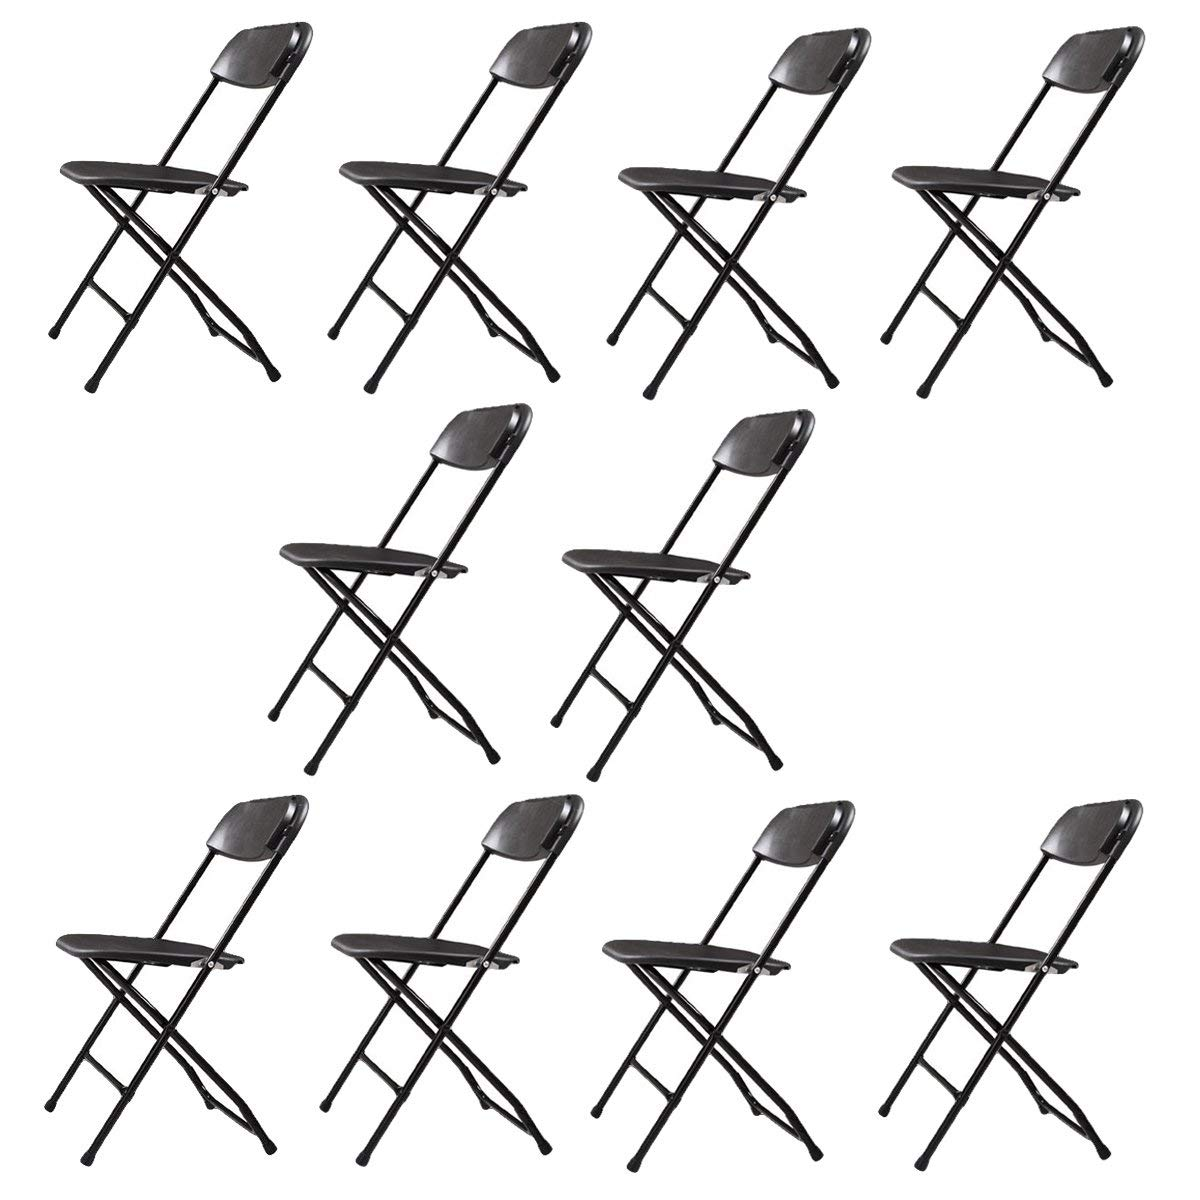 Sandinrayli 10-Pack Plastic Folding Chairs Wedding Banquet Seat Premium Party Event Chair Black by Sandinrayli